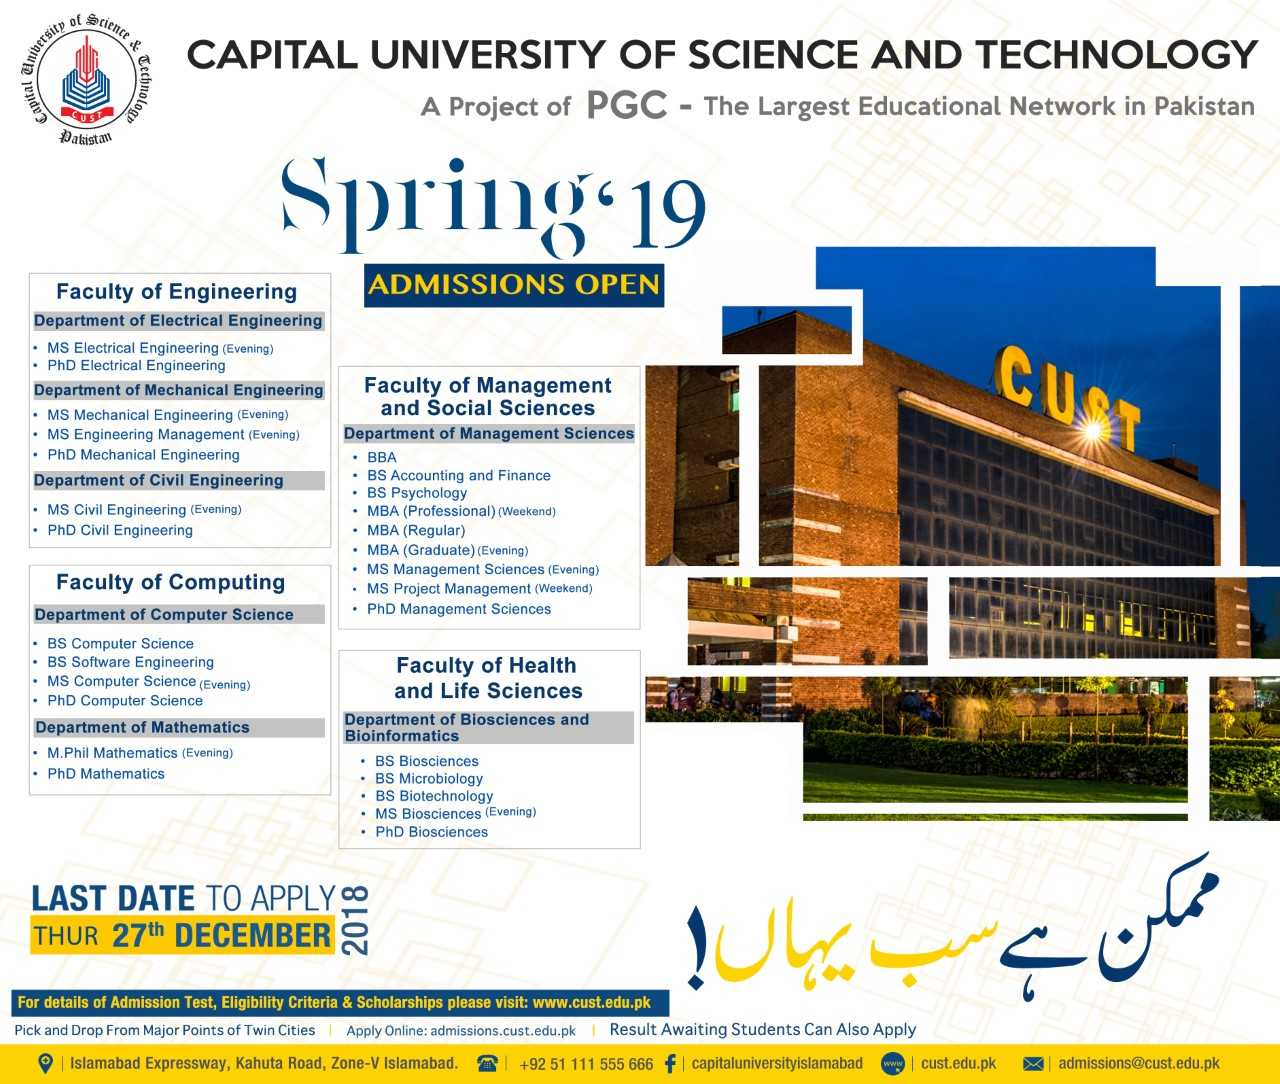 Capital University of Science and Technology Admission Open Spring 19